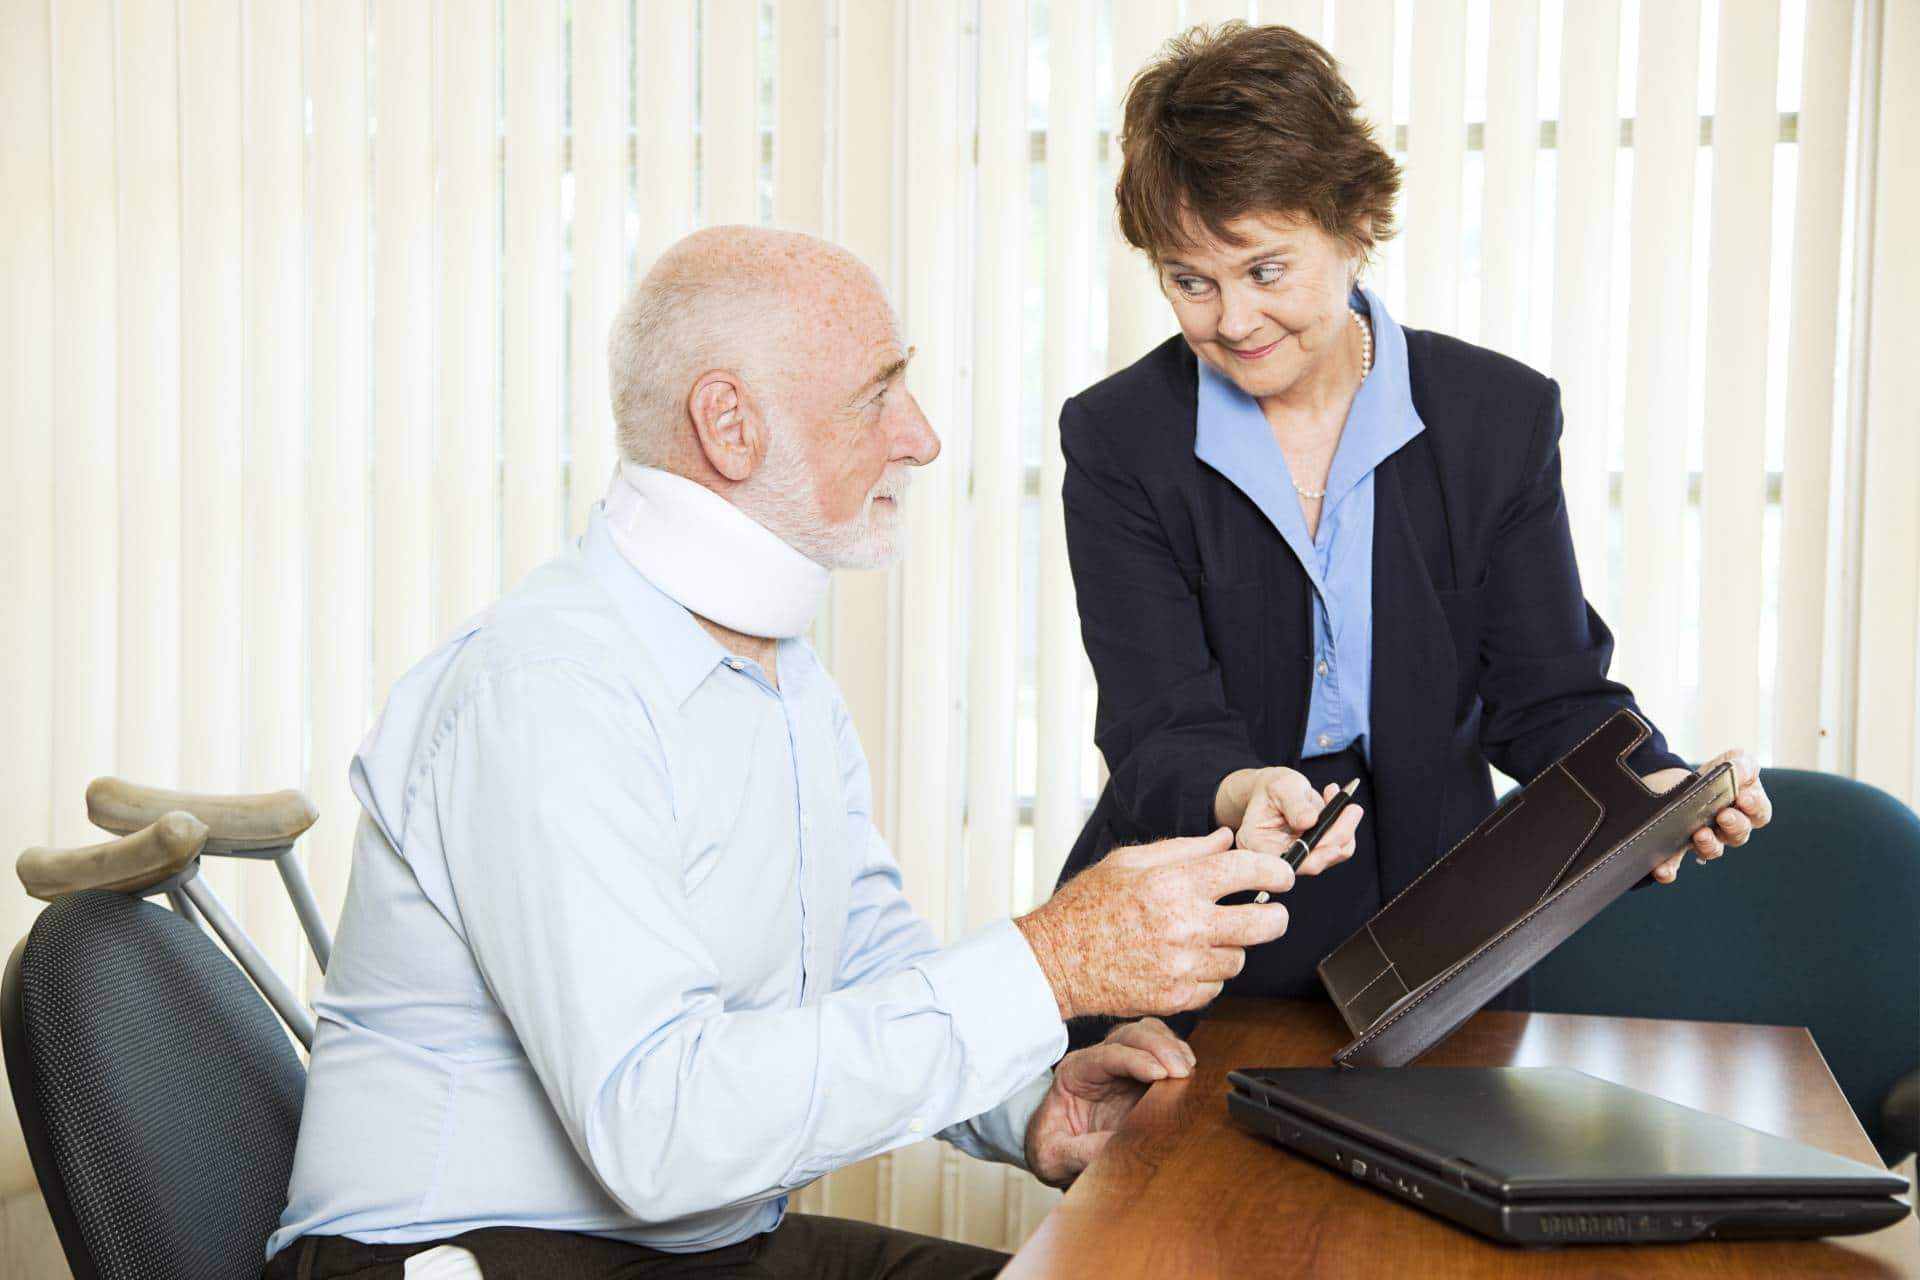 Schedule a free consultation with our personal injury lawyers at the angell law firm in Paces.